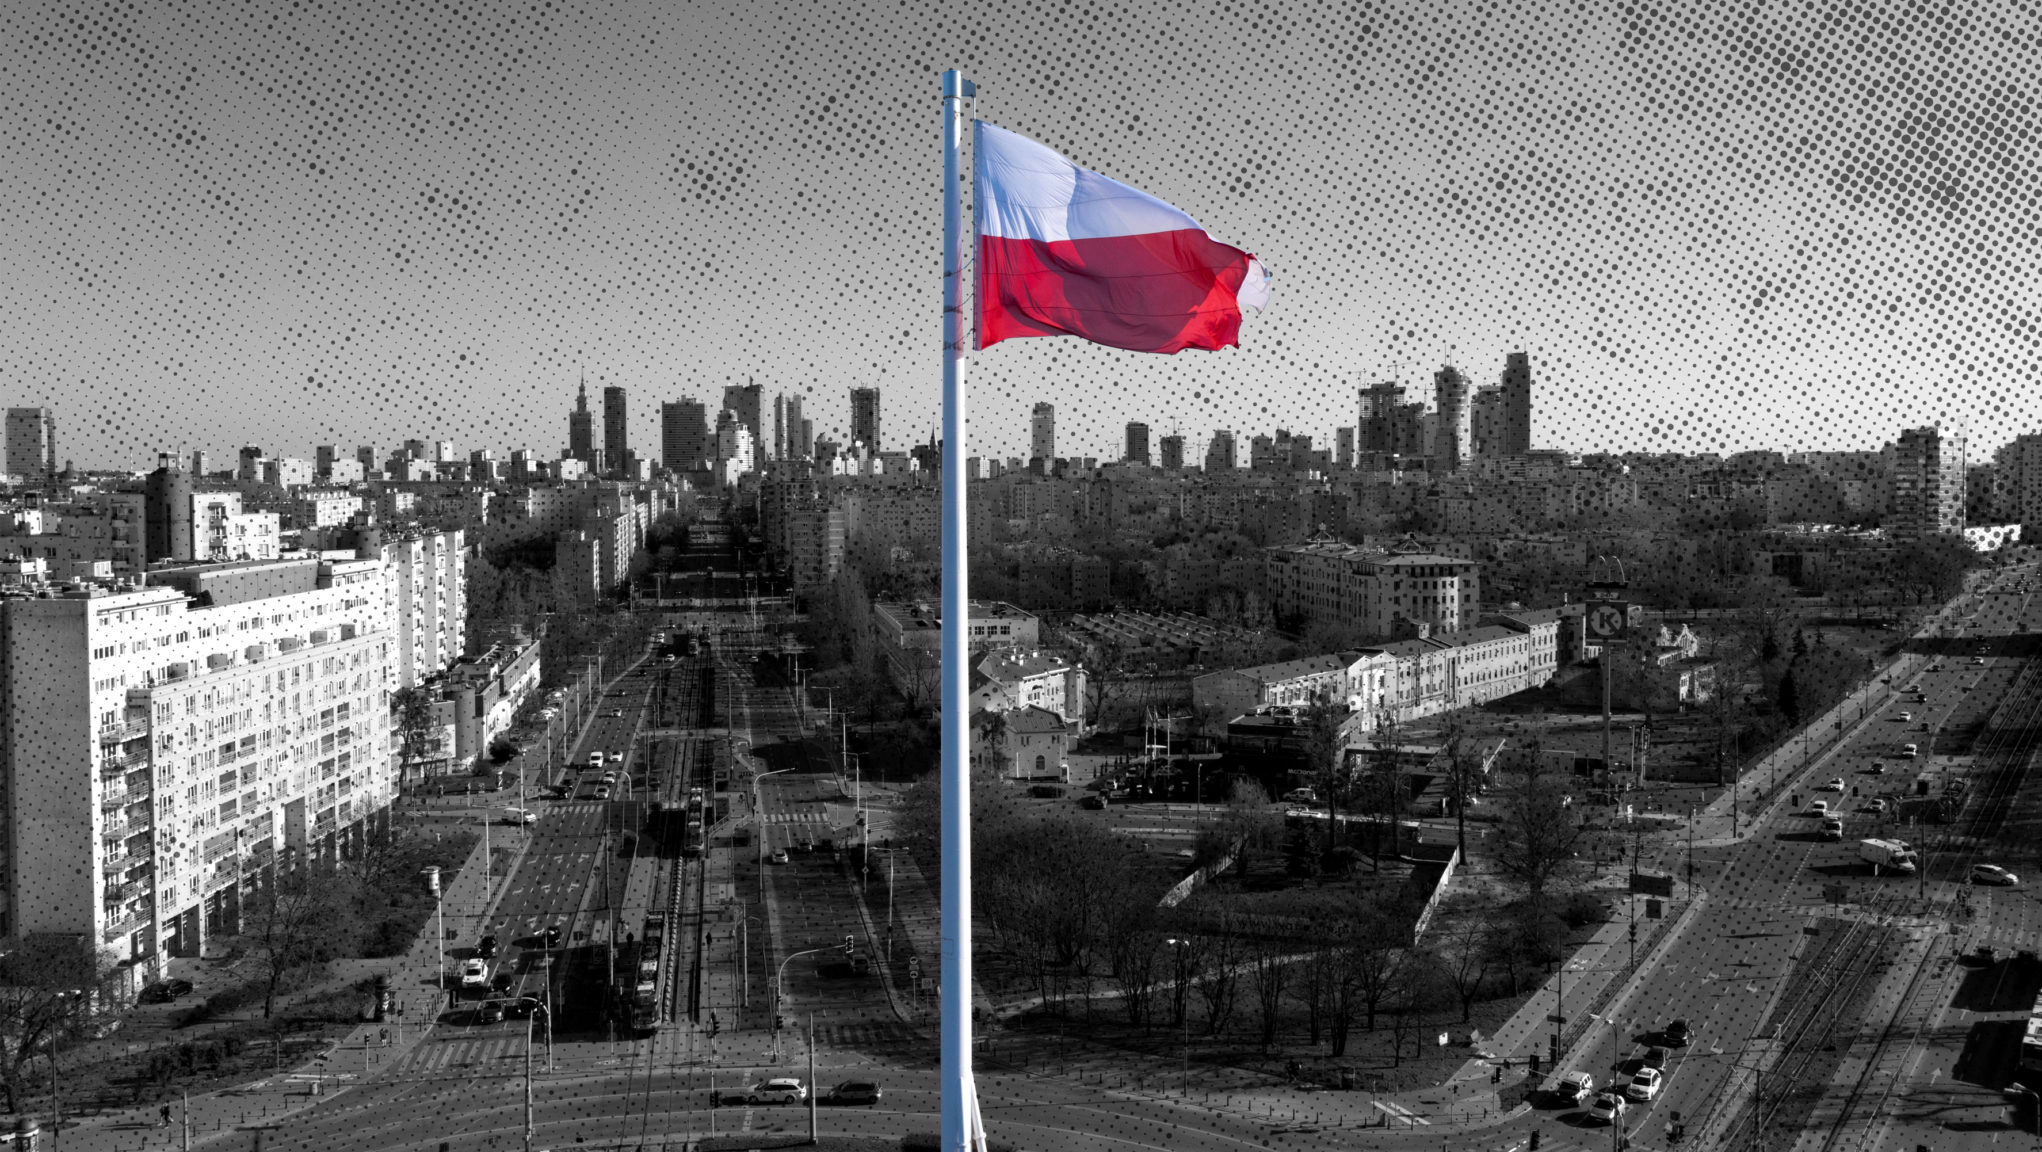 A Polish flag flies over the empty streets in Warsaw, where restrictions on personal movement have been put in place due to coronavirus in Poland.